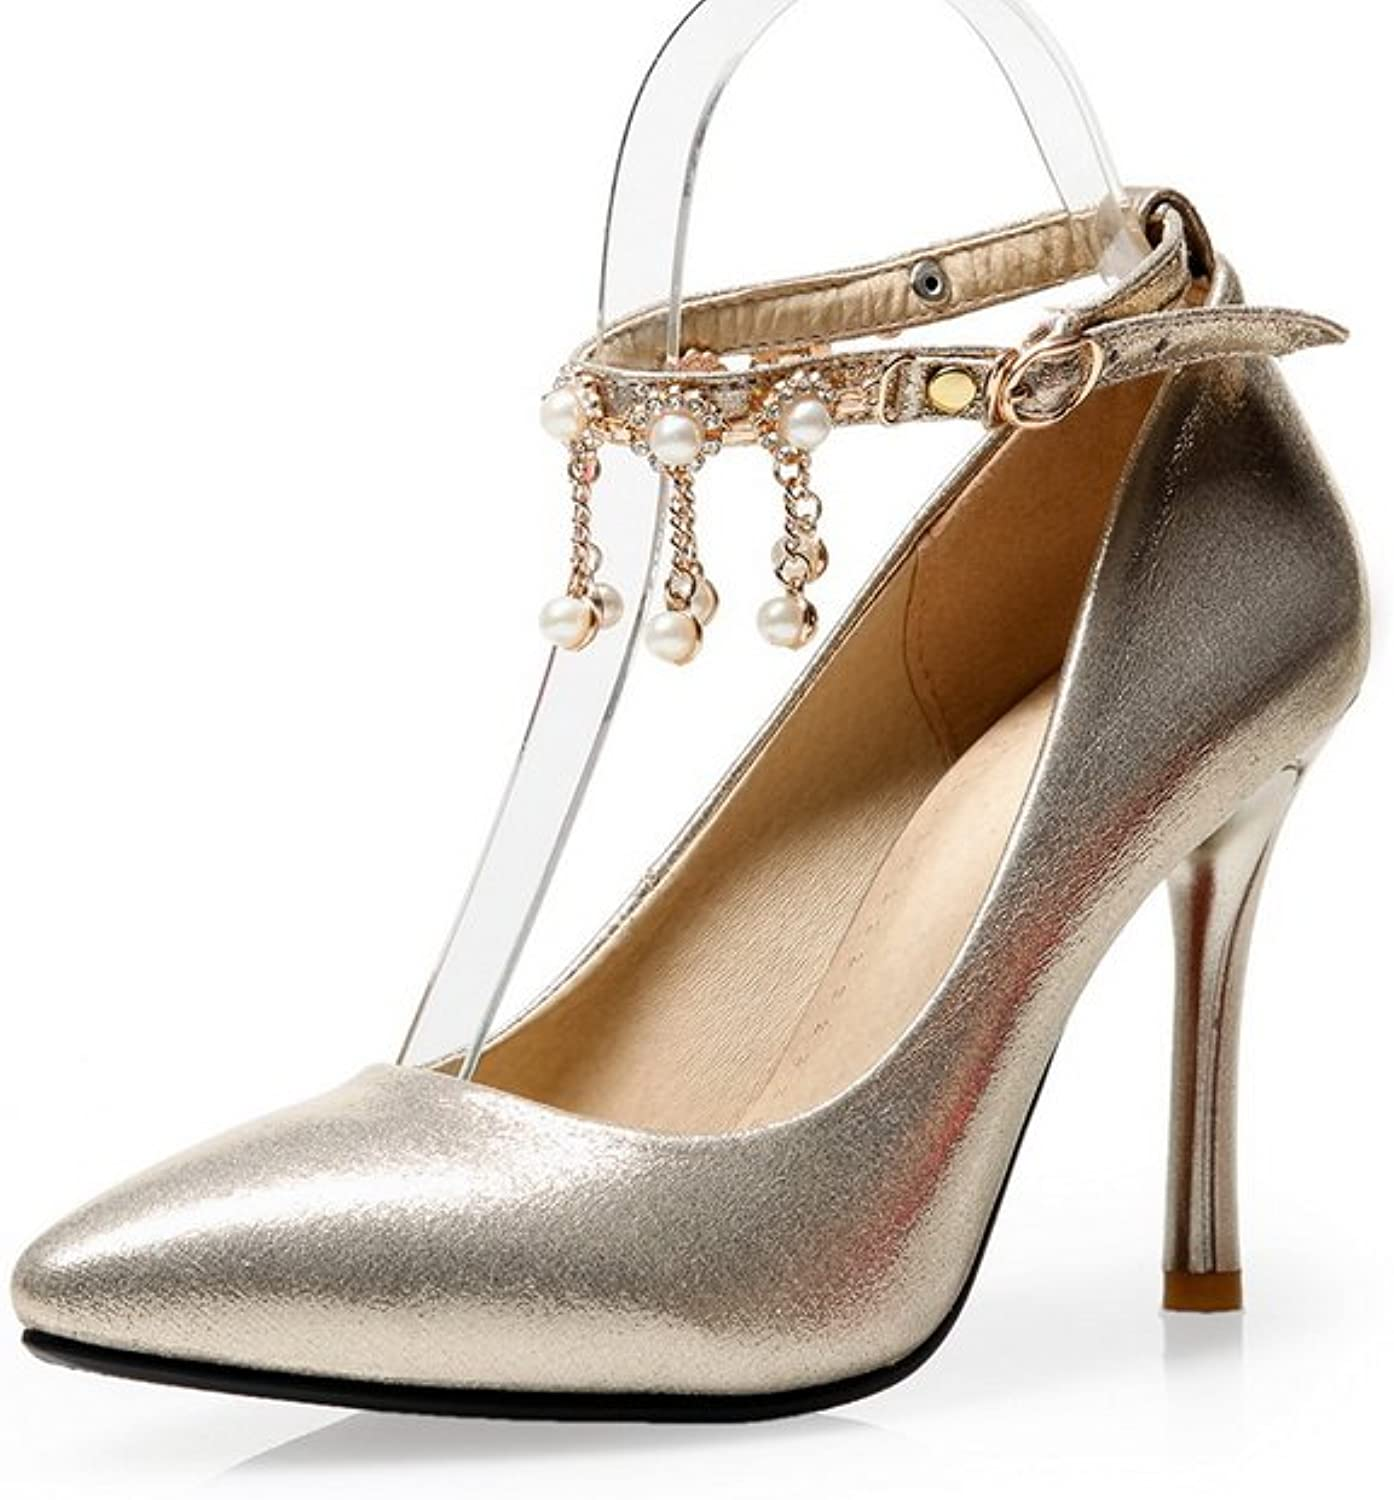 1TO9 Ladies Metal Chain Studded Rhinestones Metal Buckles gold Polyurethane Pumps-shoes - 7 B(M) US